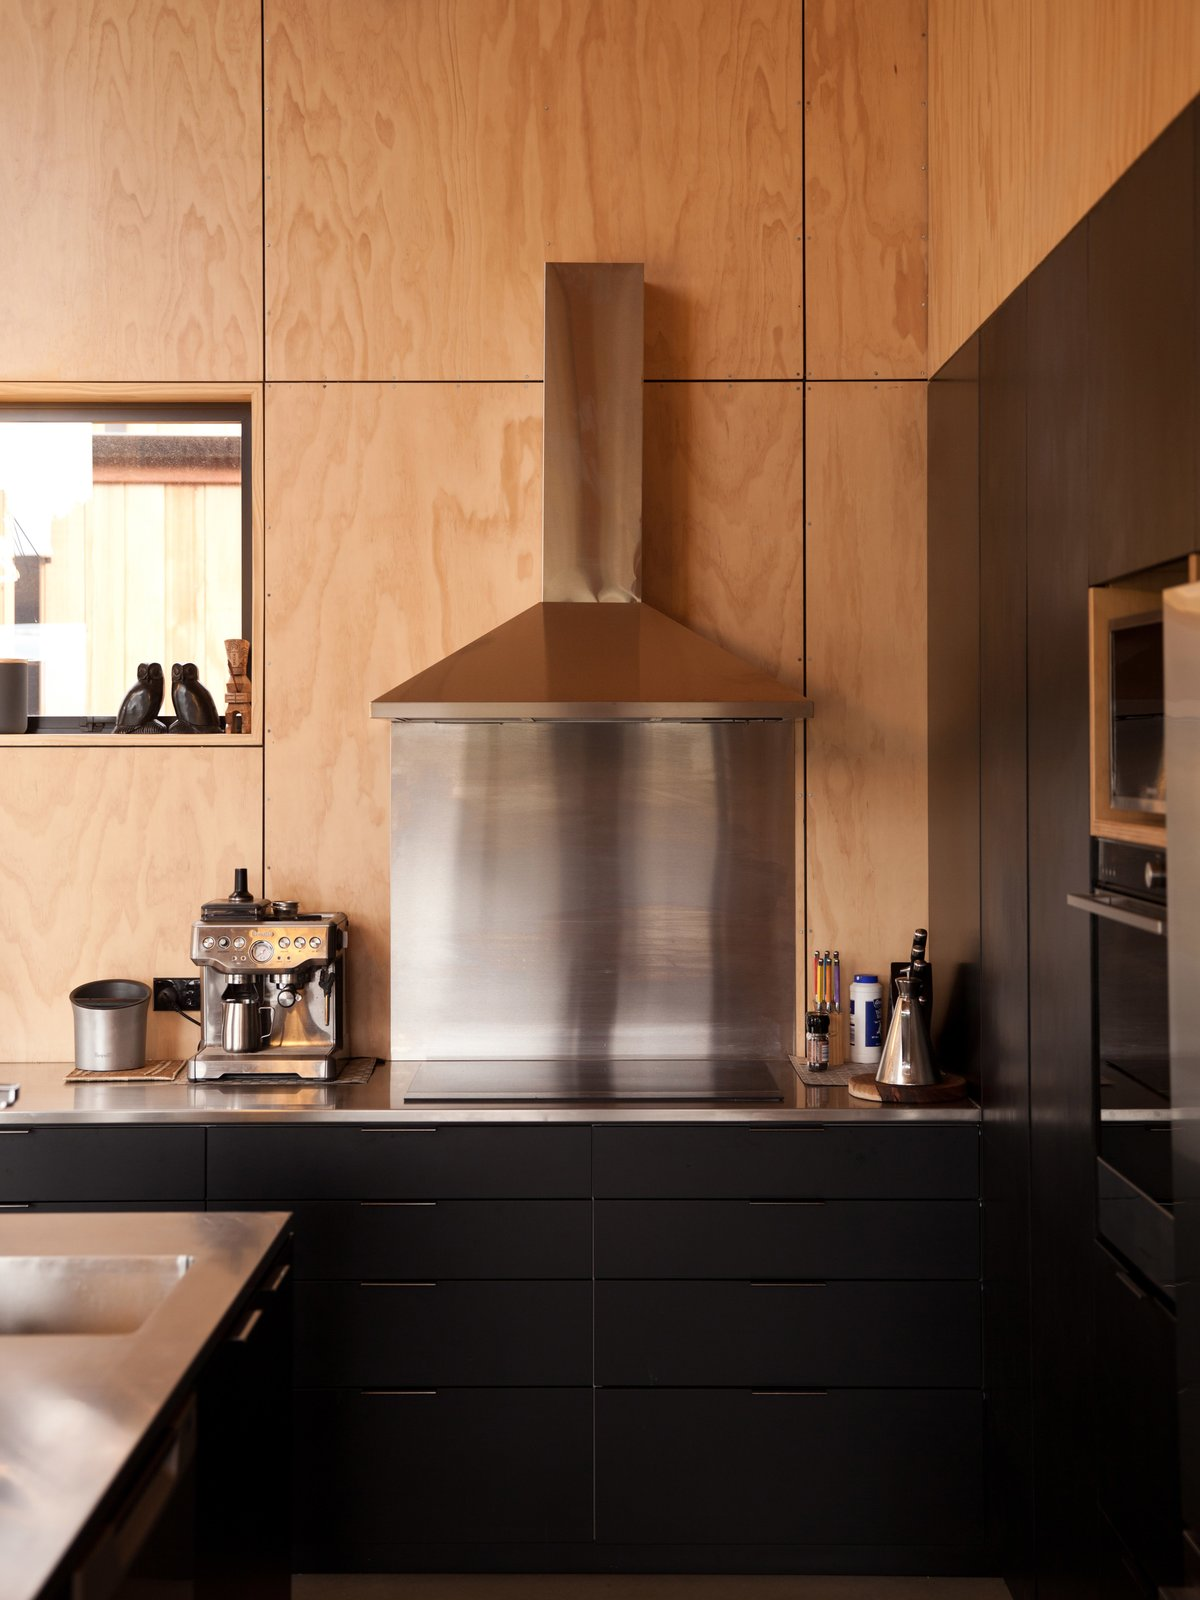 Kitchen, Metal, Metal, Cooktops, Range Hood, Drop In, Wall Oven, and Wood The kitchen is both stylish and practical.  Kitchen Cooktops Drop In Metal Photos from A Tiny Cabin Boasts Big Views of the New Zealand Countryside